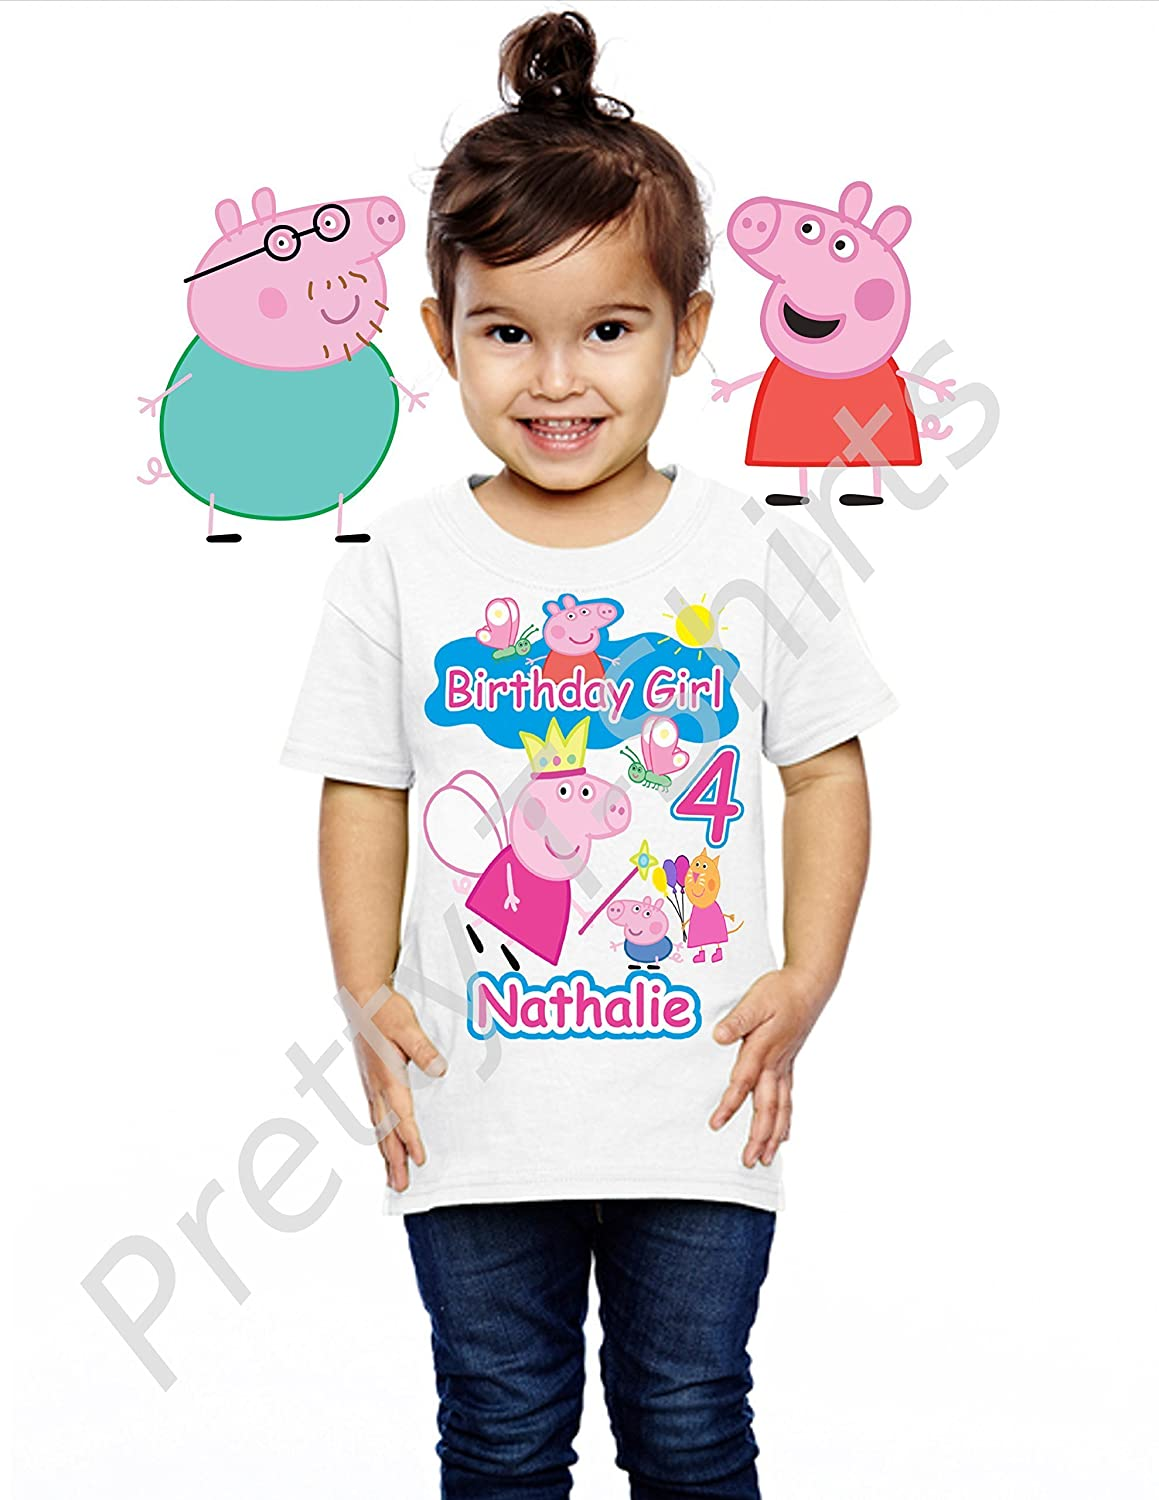 Peppa Pig Birthday Shirt, ADD any name and ANY age, Girl Birthday Shirt, FAMILY Matching Birthday Shirts, Birthday Shirts, Peppa Birthday Shirt, Peppa Shirt, Peppa Pig, VISIT OUR SHOP!!,